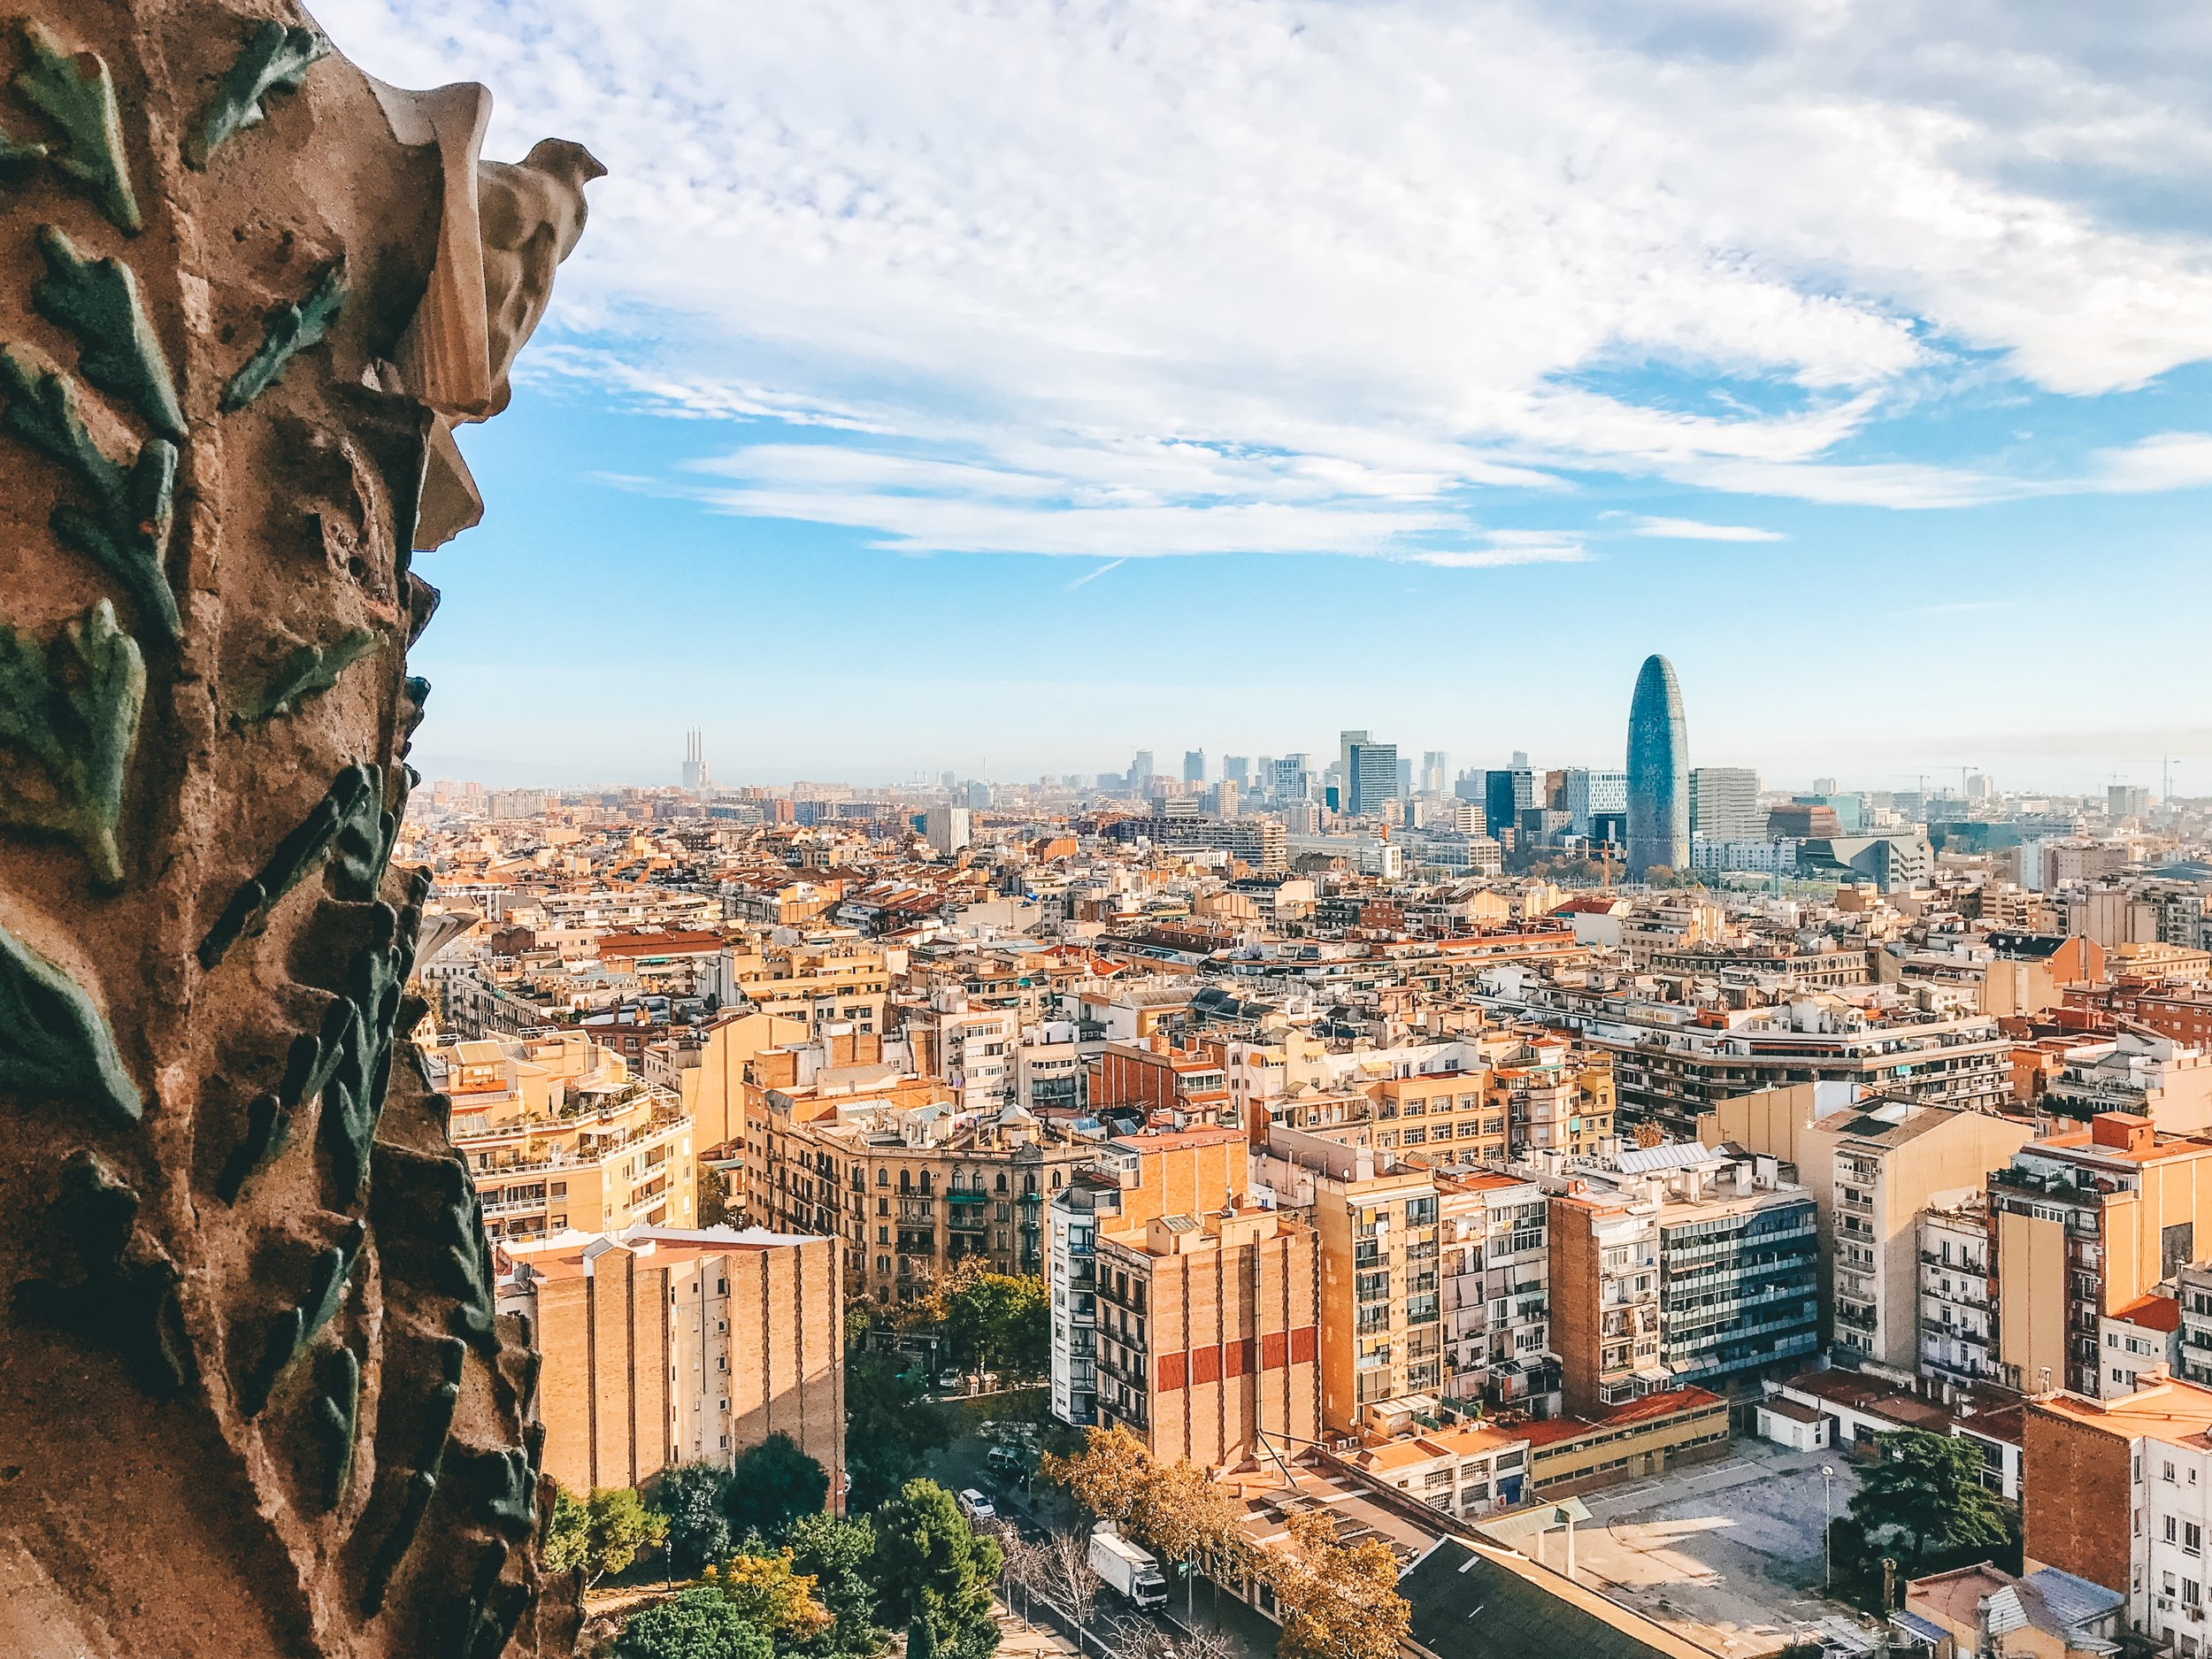 View from Sagrada Familia - Nativity Tower